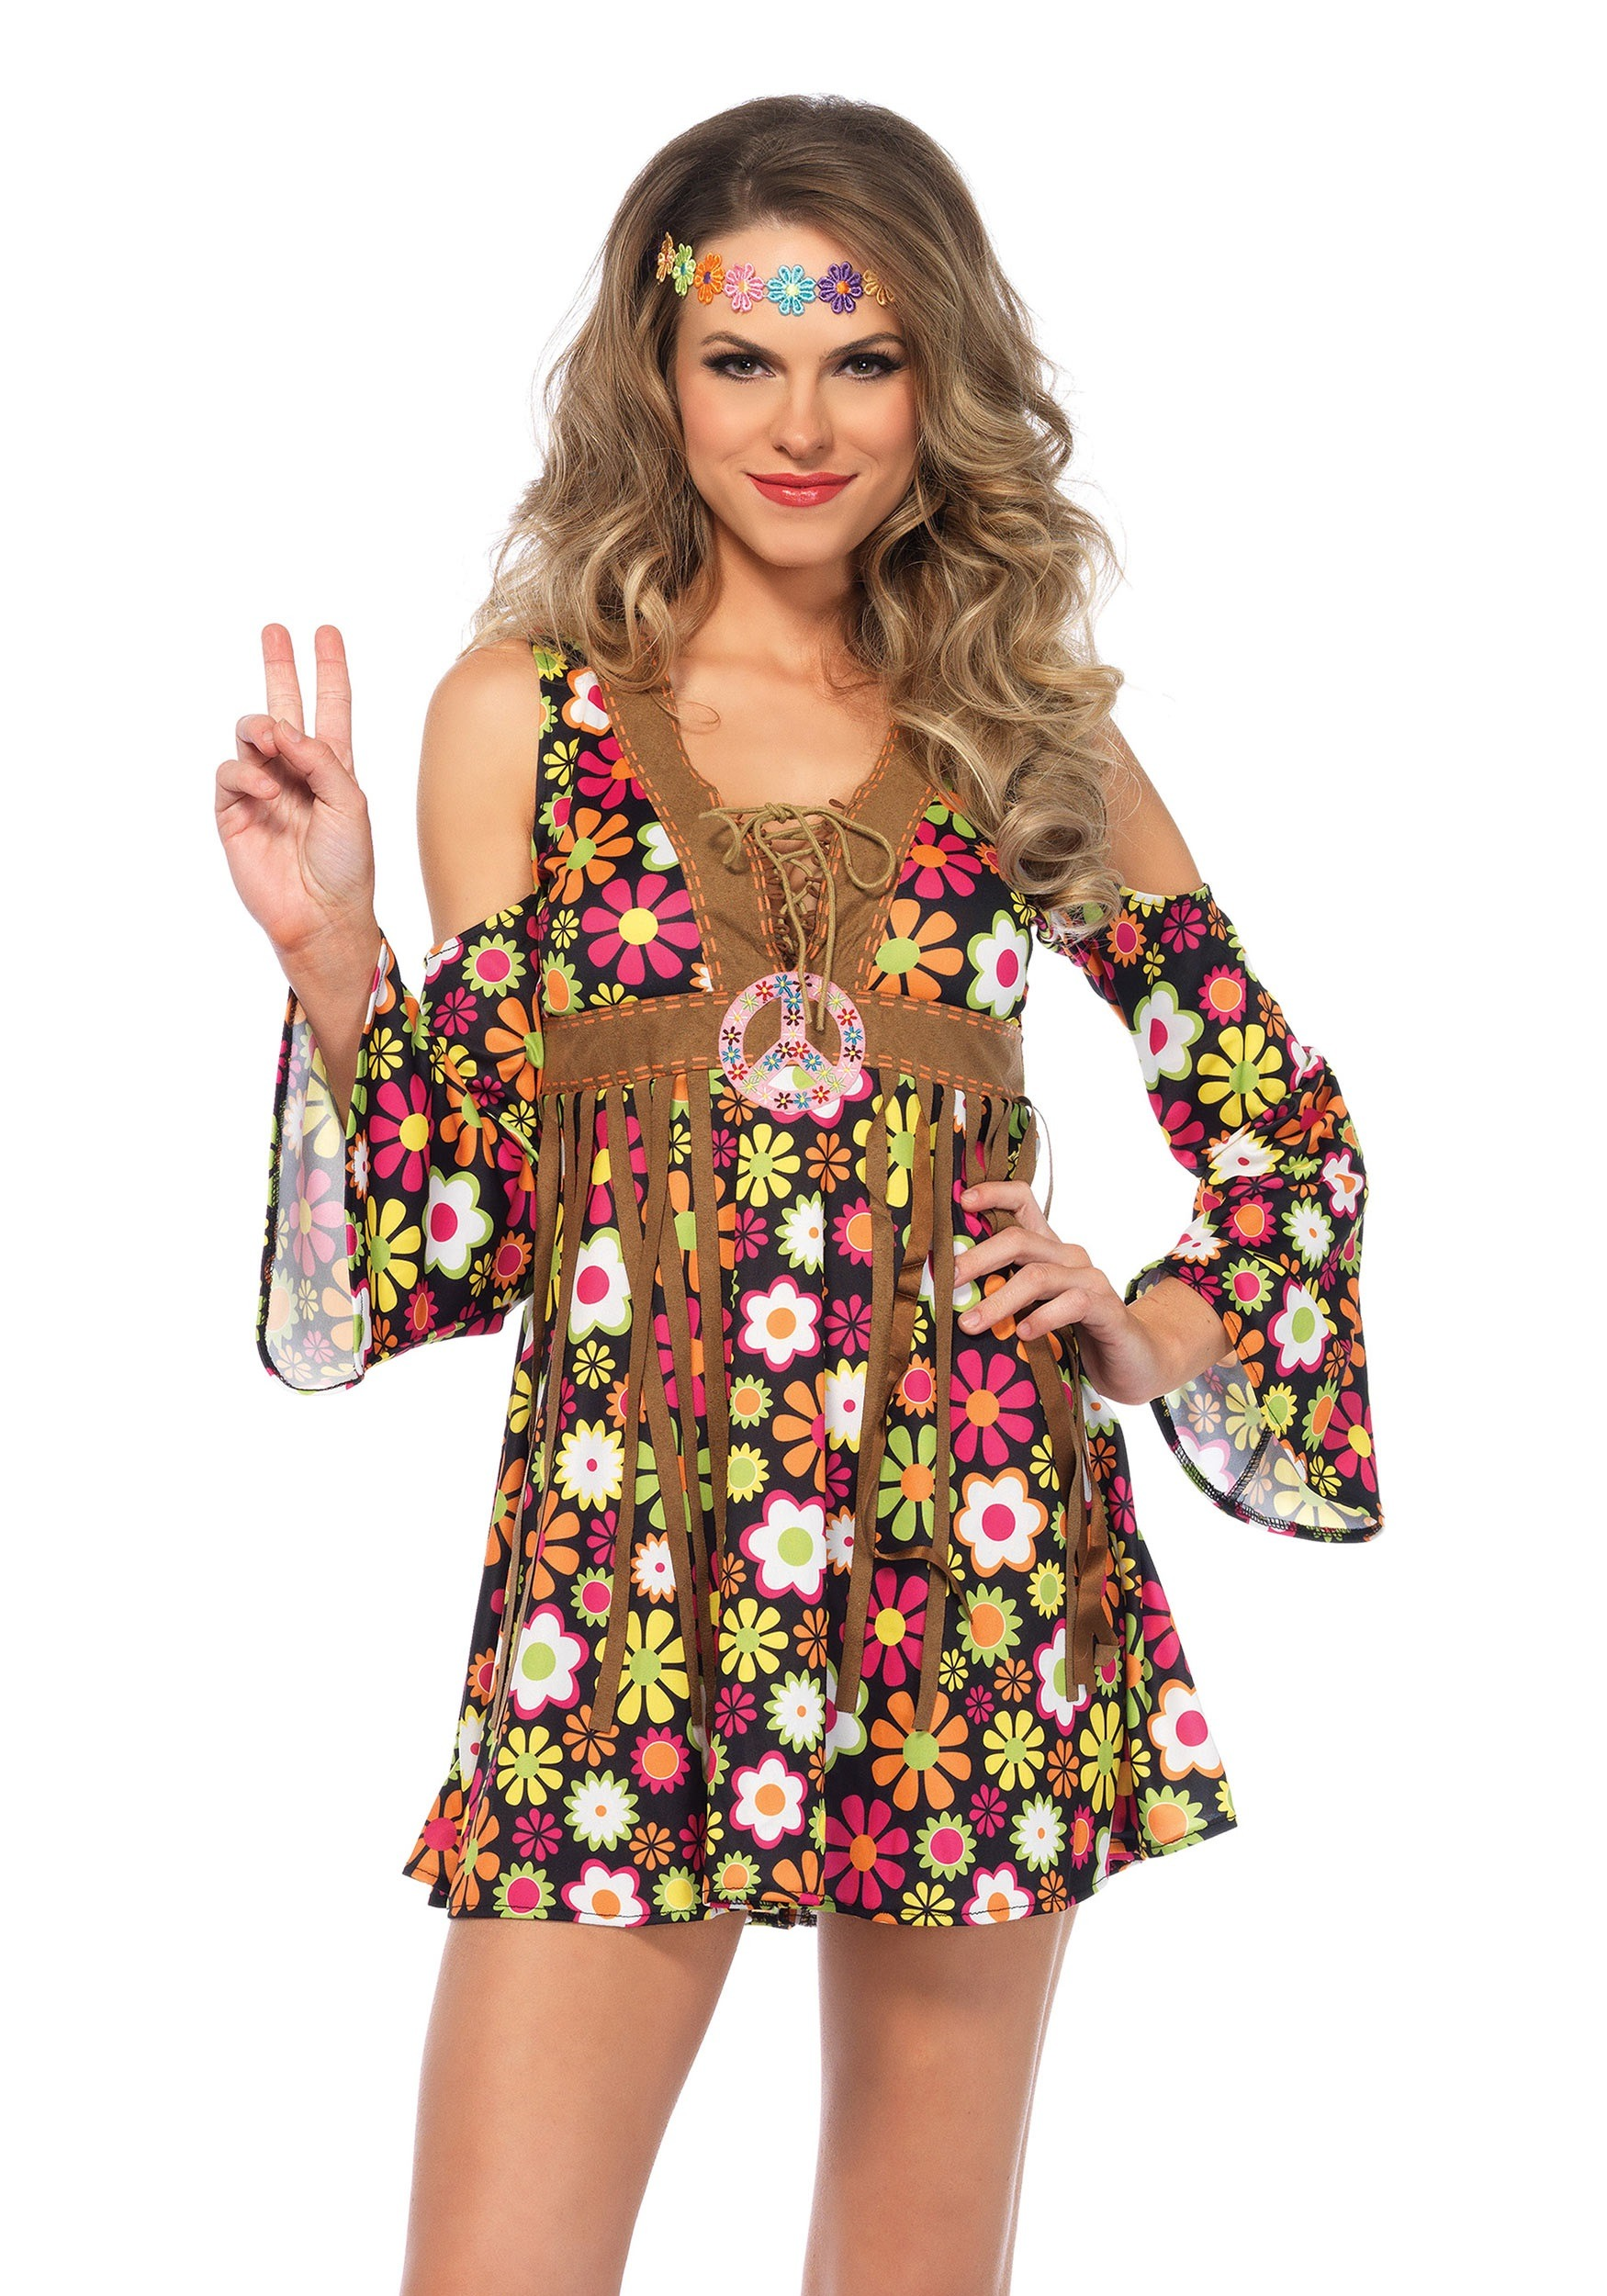 50a6c2b247f womens-starflower-hippie-costume.jpg